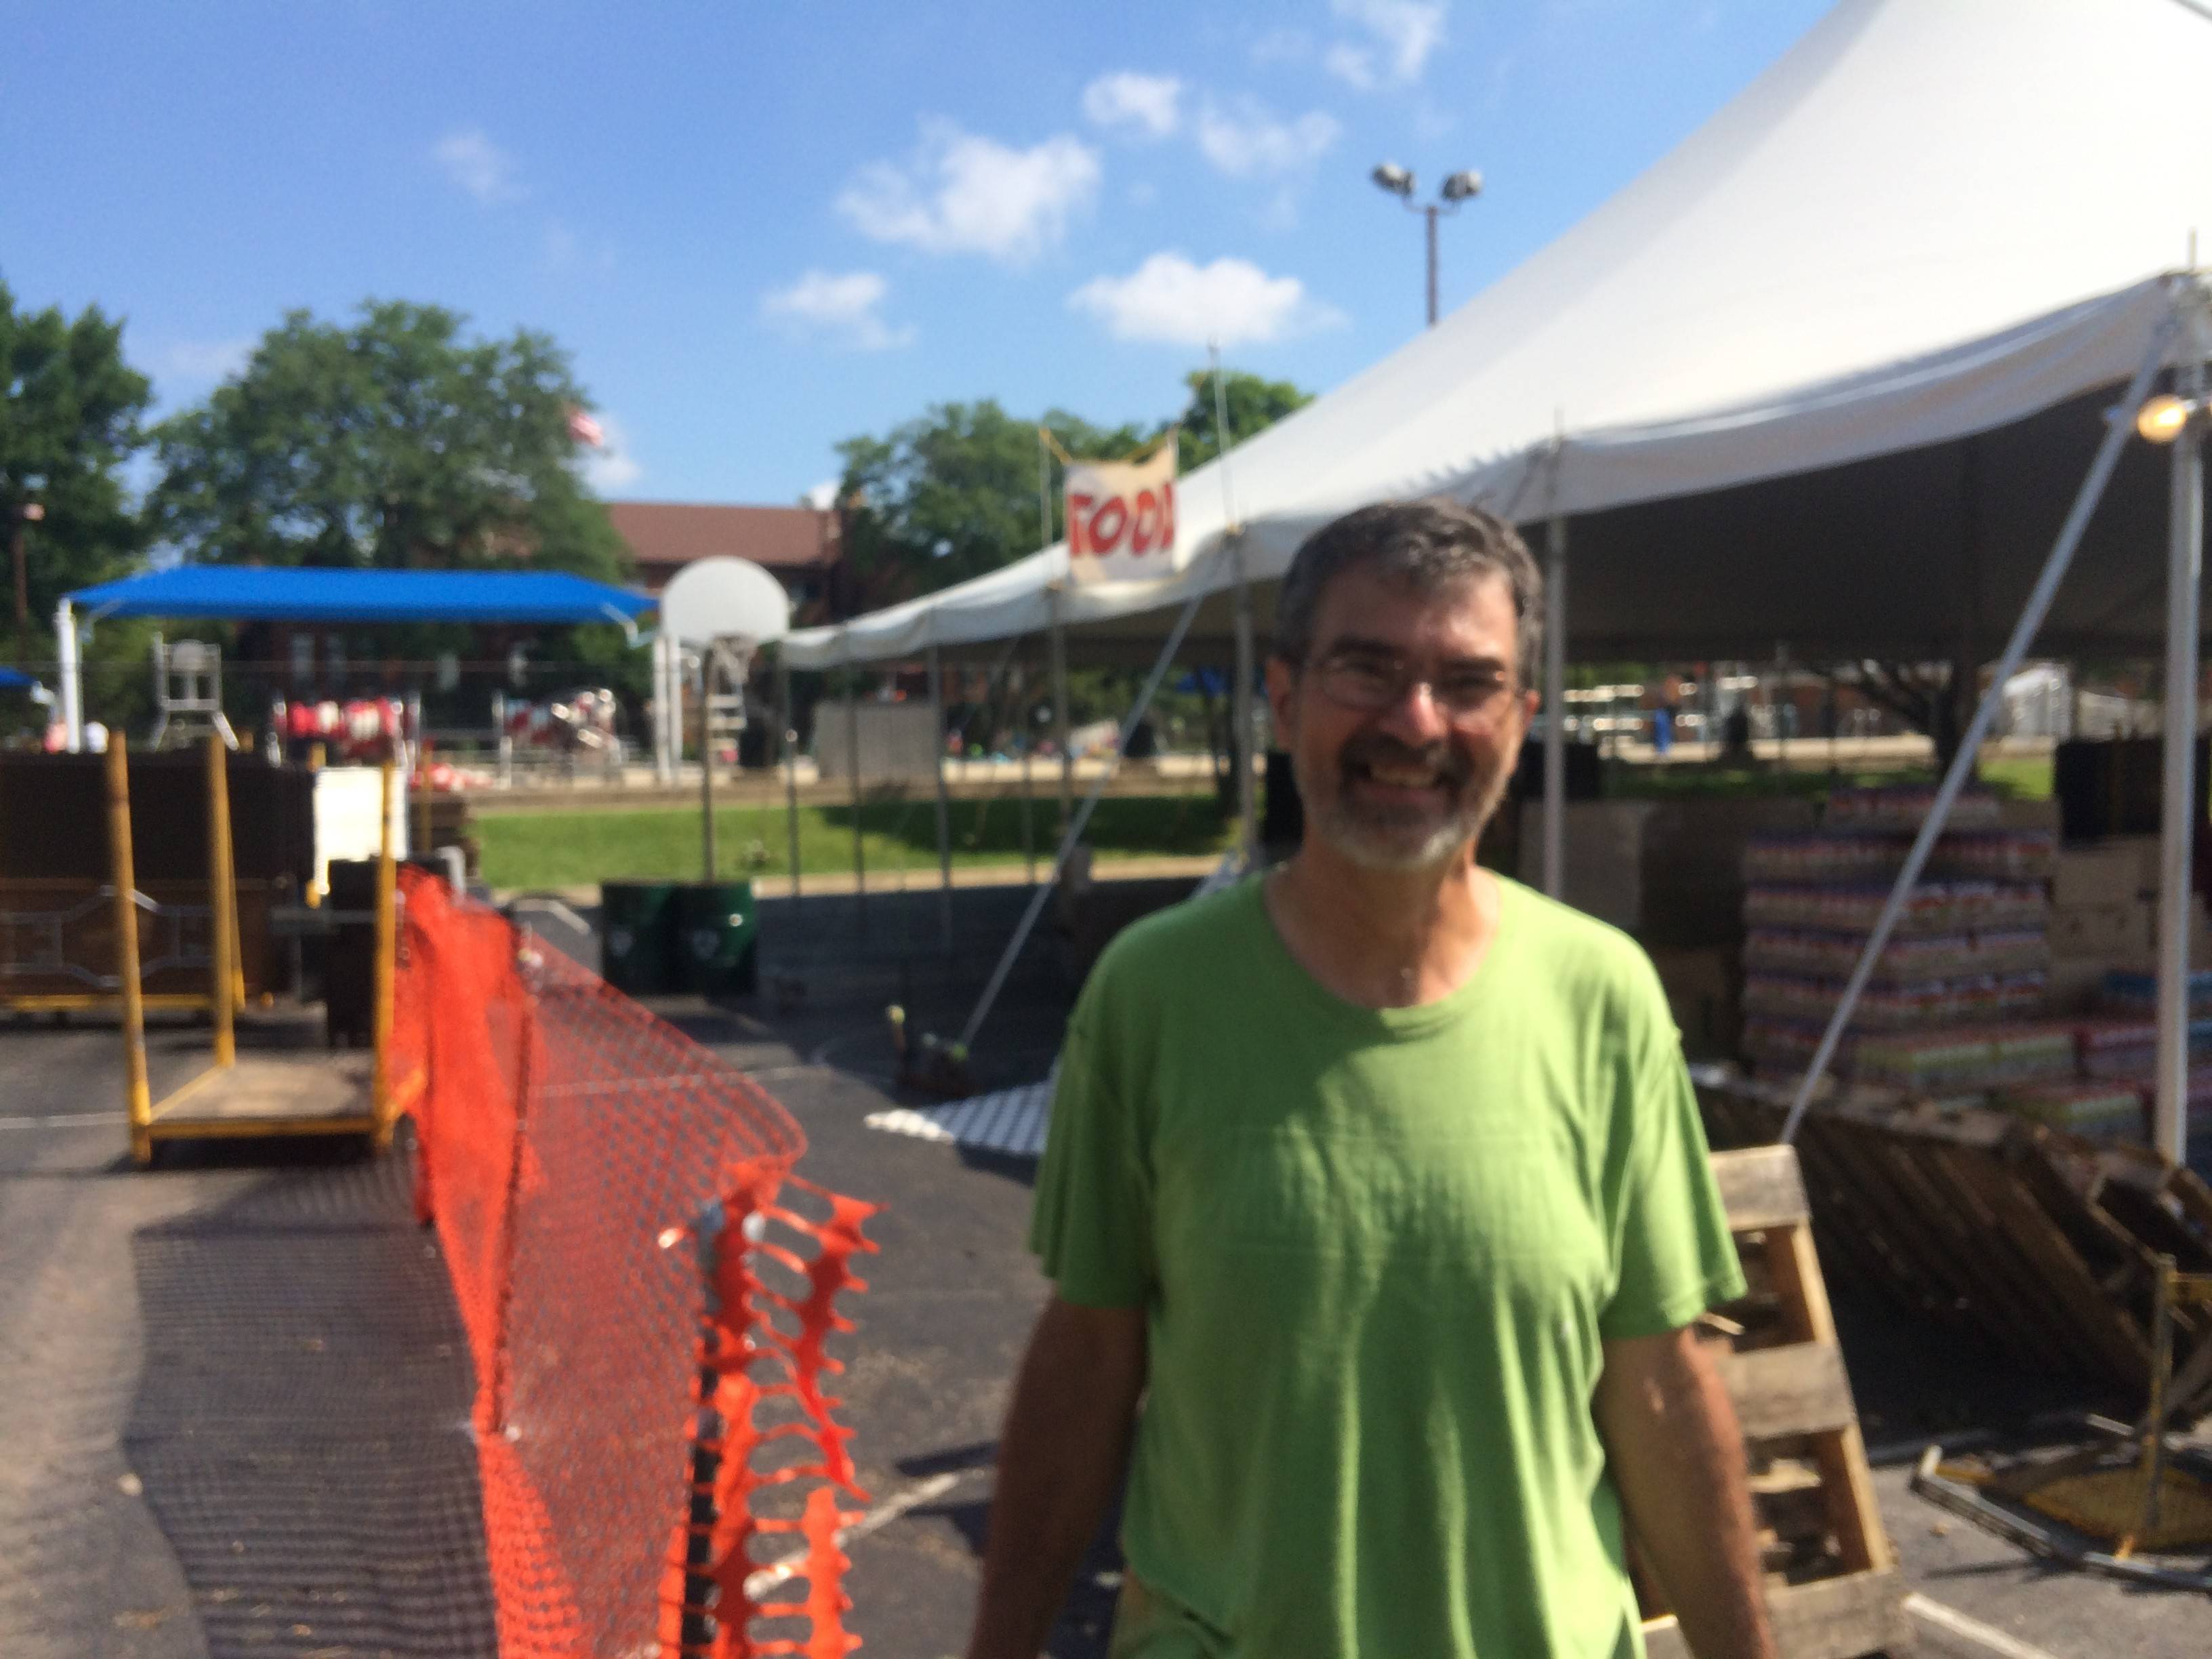 Tom Hahn, 65, of Arlington Heights volunteers to clean up the Frontier Days festival on Monday. Boosted by good weather and big-name acts, organizers said this year's fest was a big success.